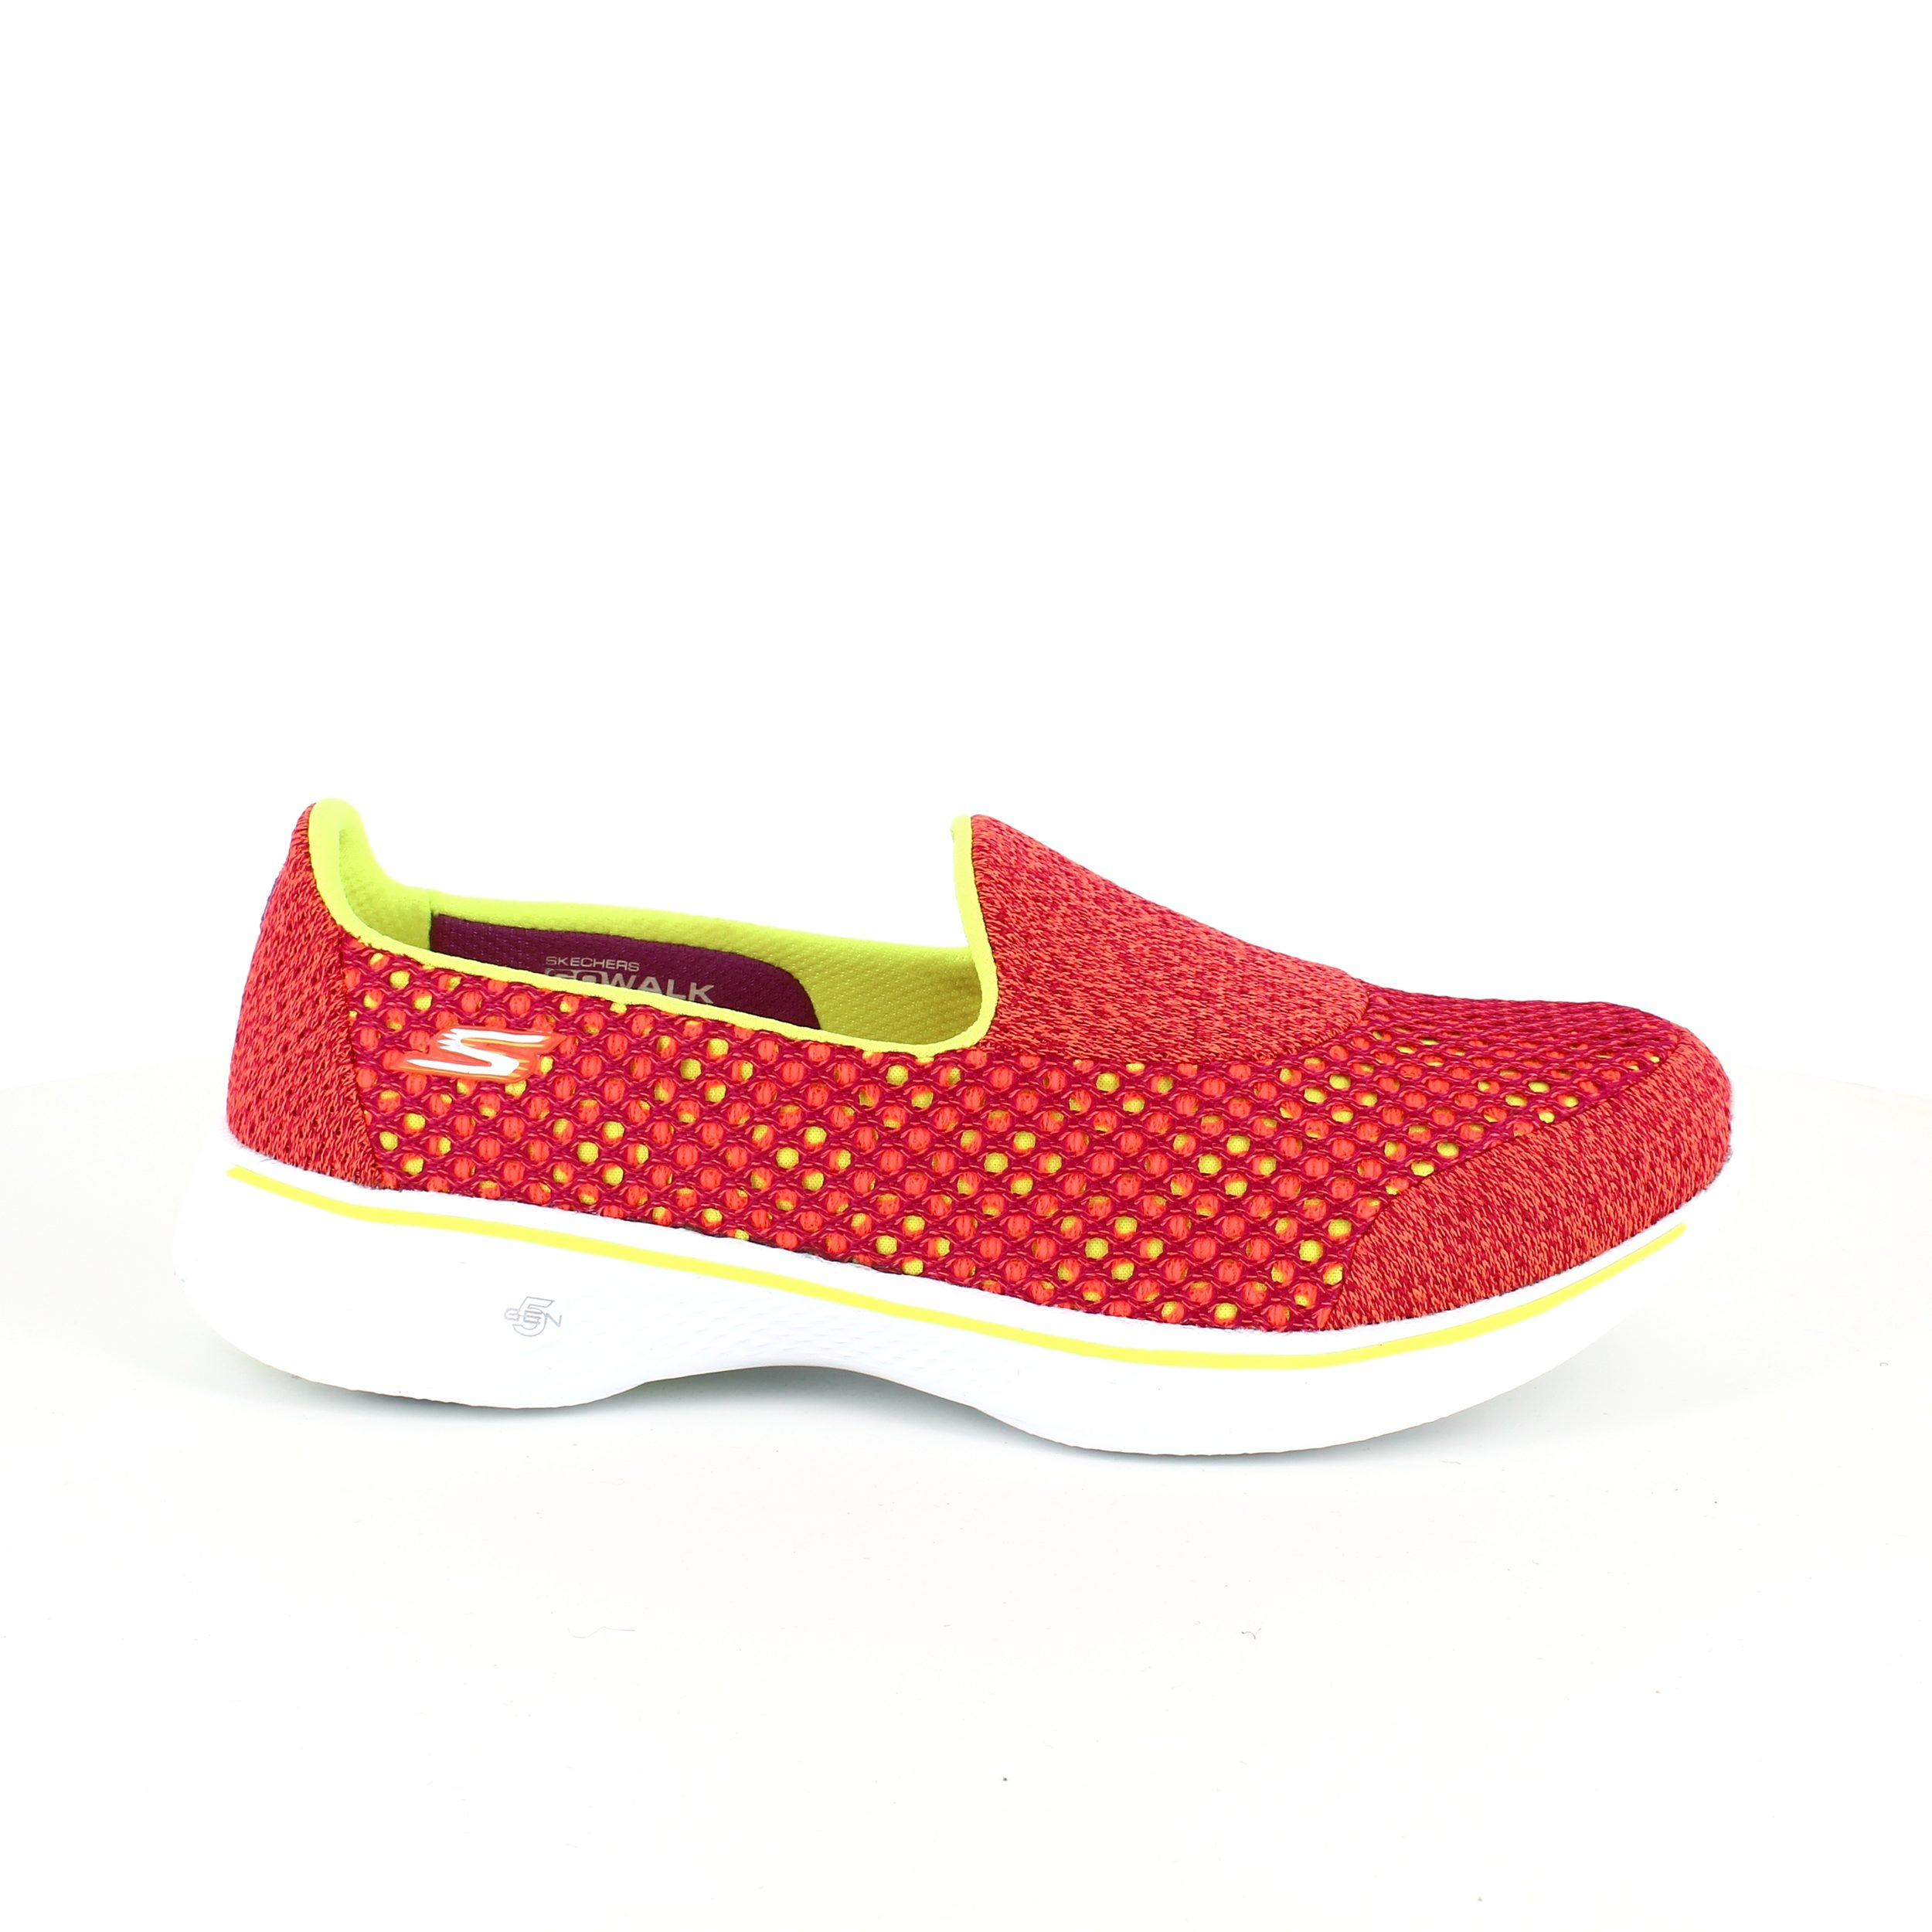 Image of   Orange ballerina fra Skechers, Go walk 4 - 37